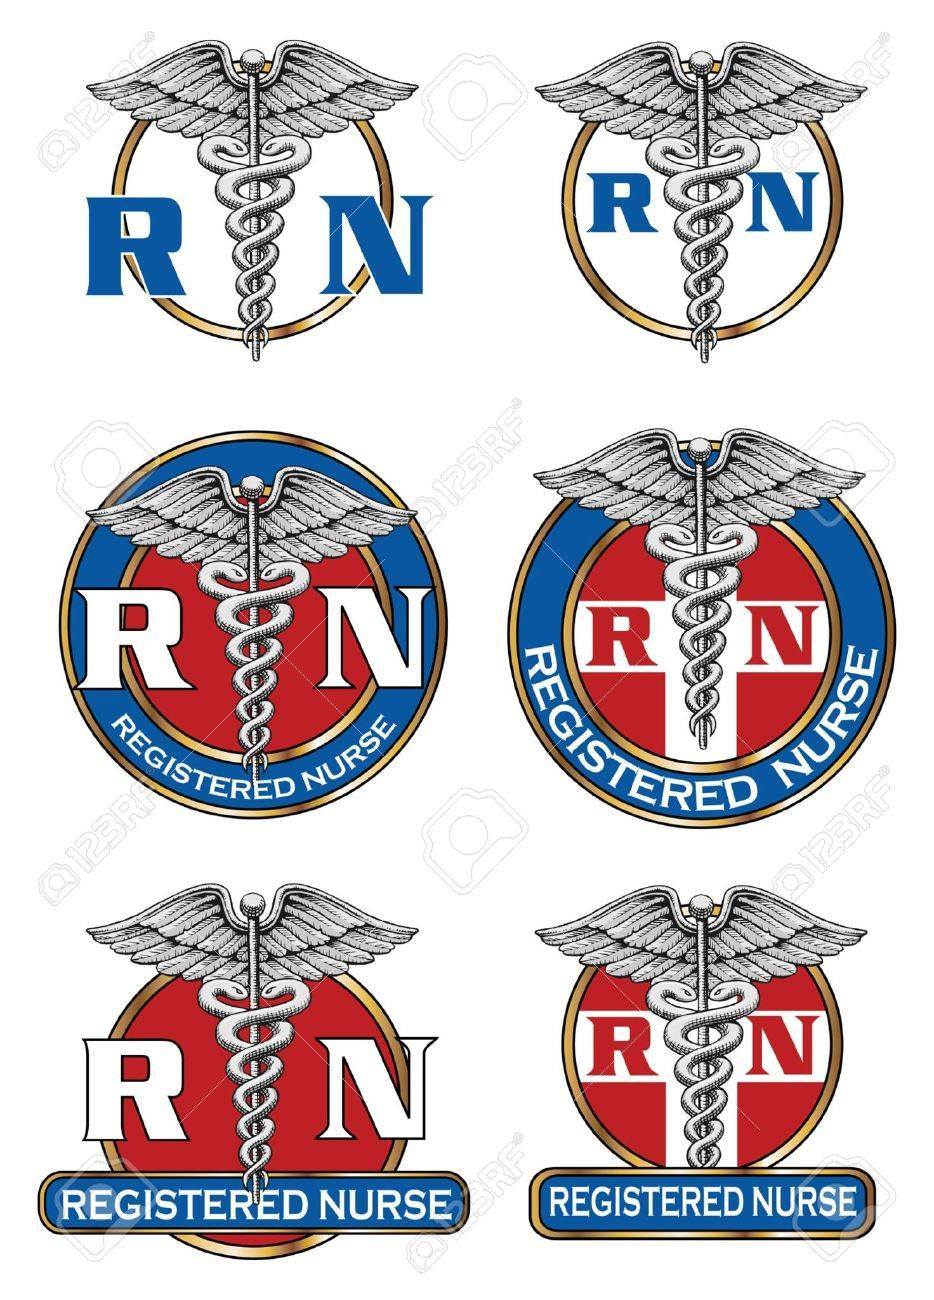 Registered Nurse Designs Is An Illustration Of Six Different